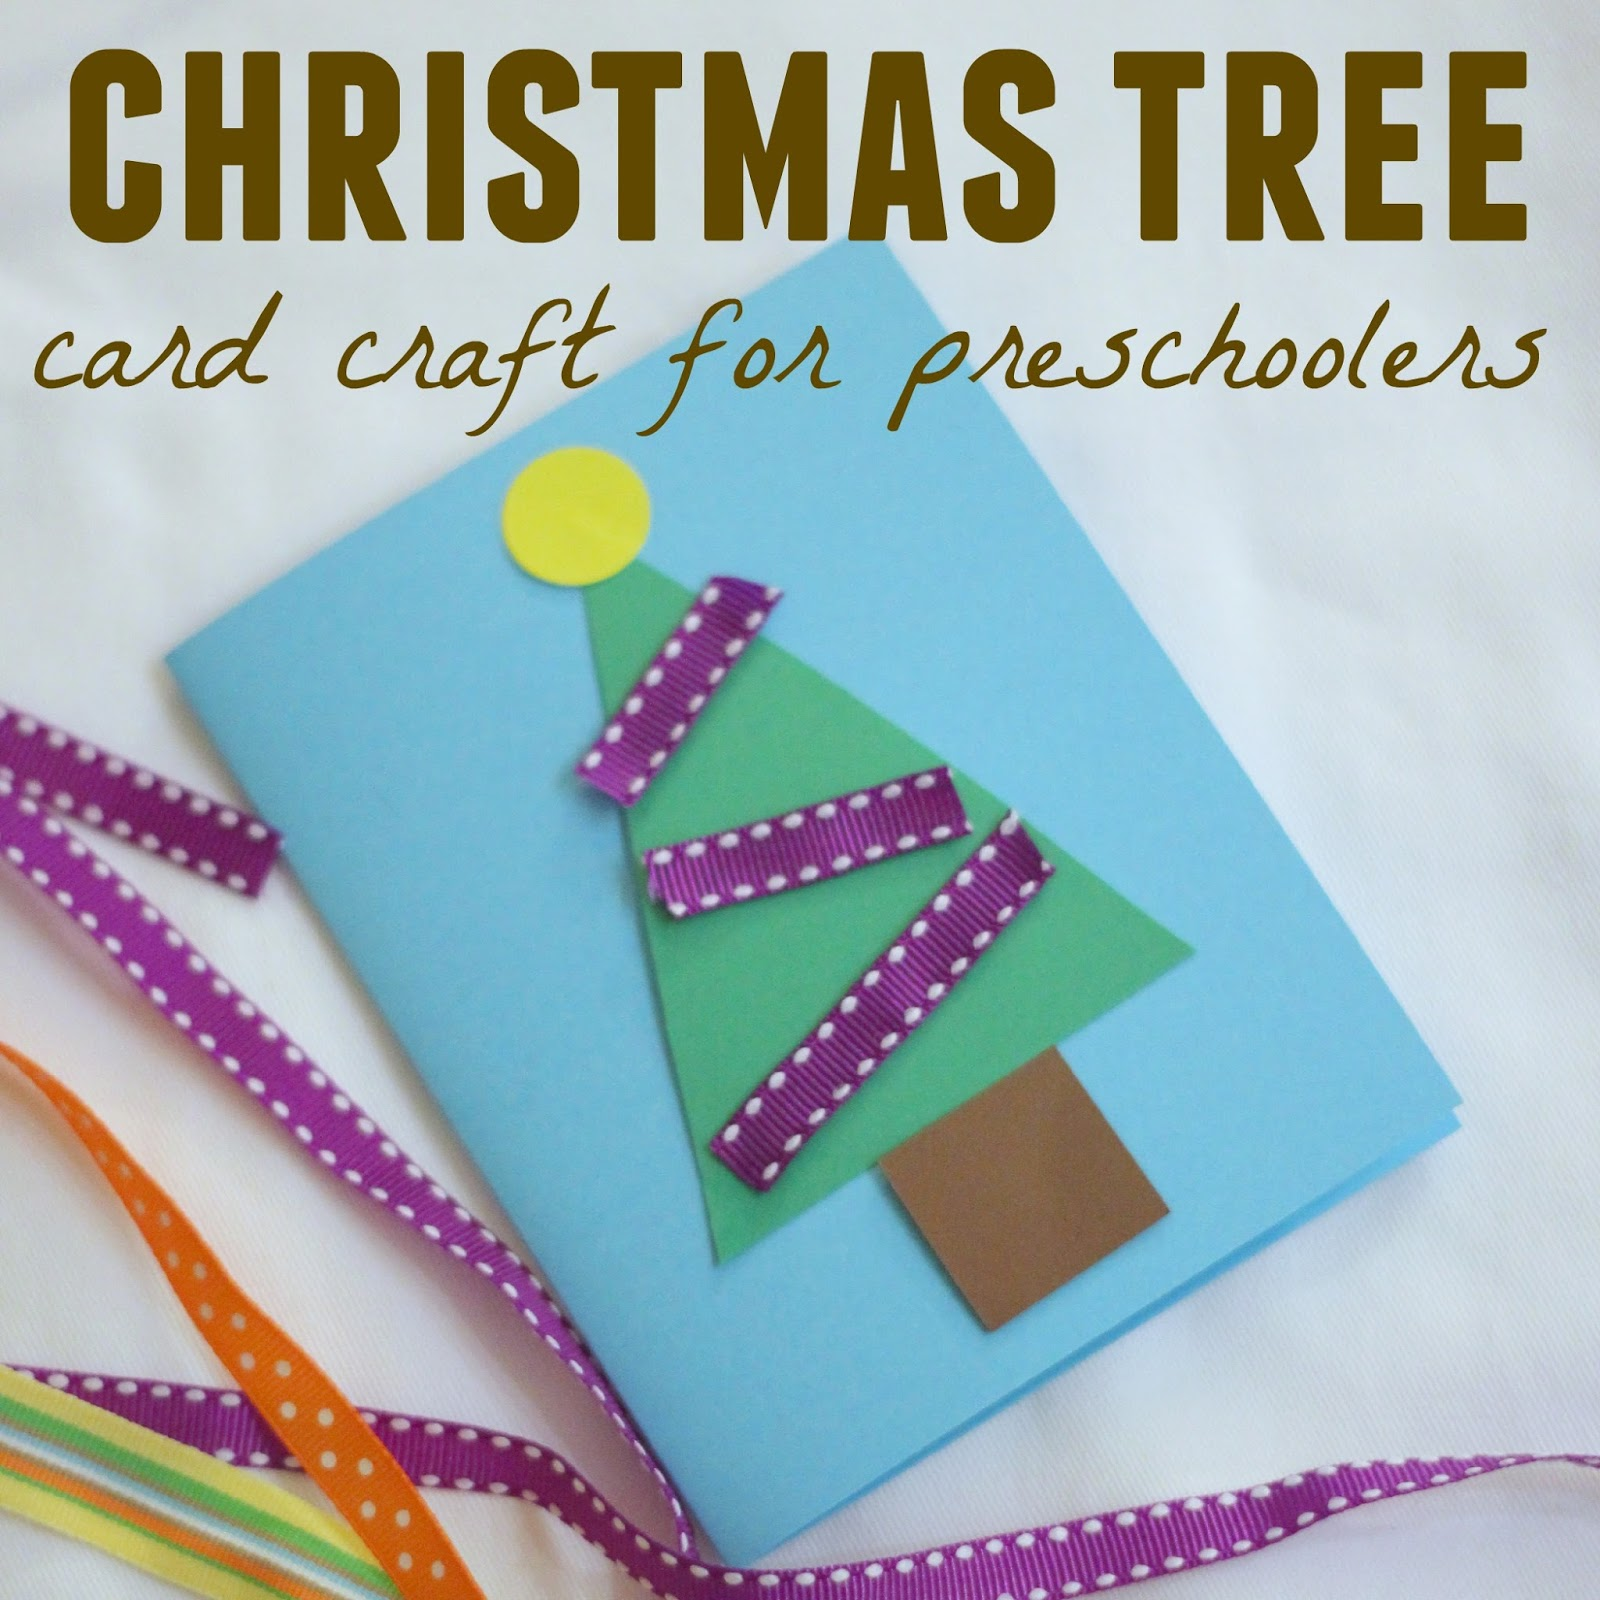 Toddler approved christmas tree card craft for preschoolers for Christmas tree cards to make